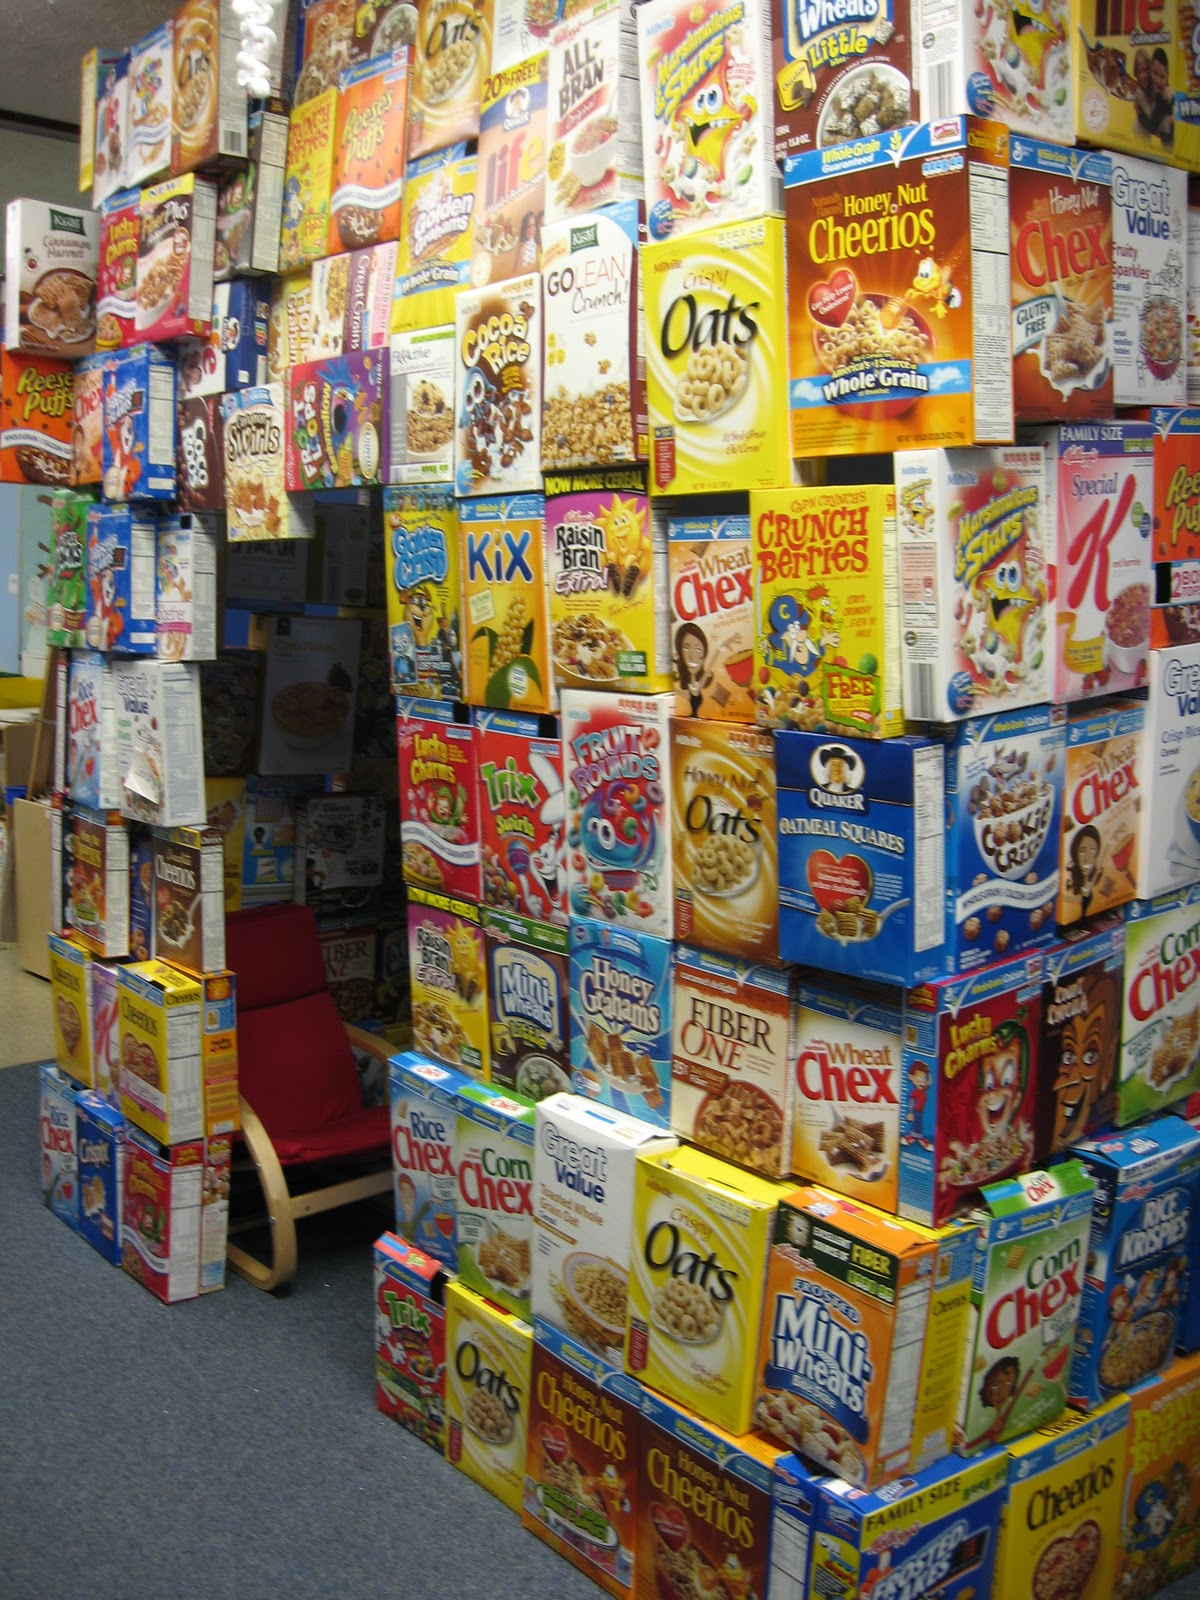 Metamora community preschool my impenetrable cereal box for What type of cardboard are cereal boxes made of